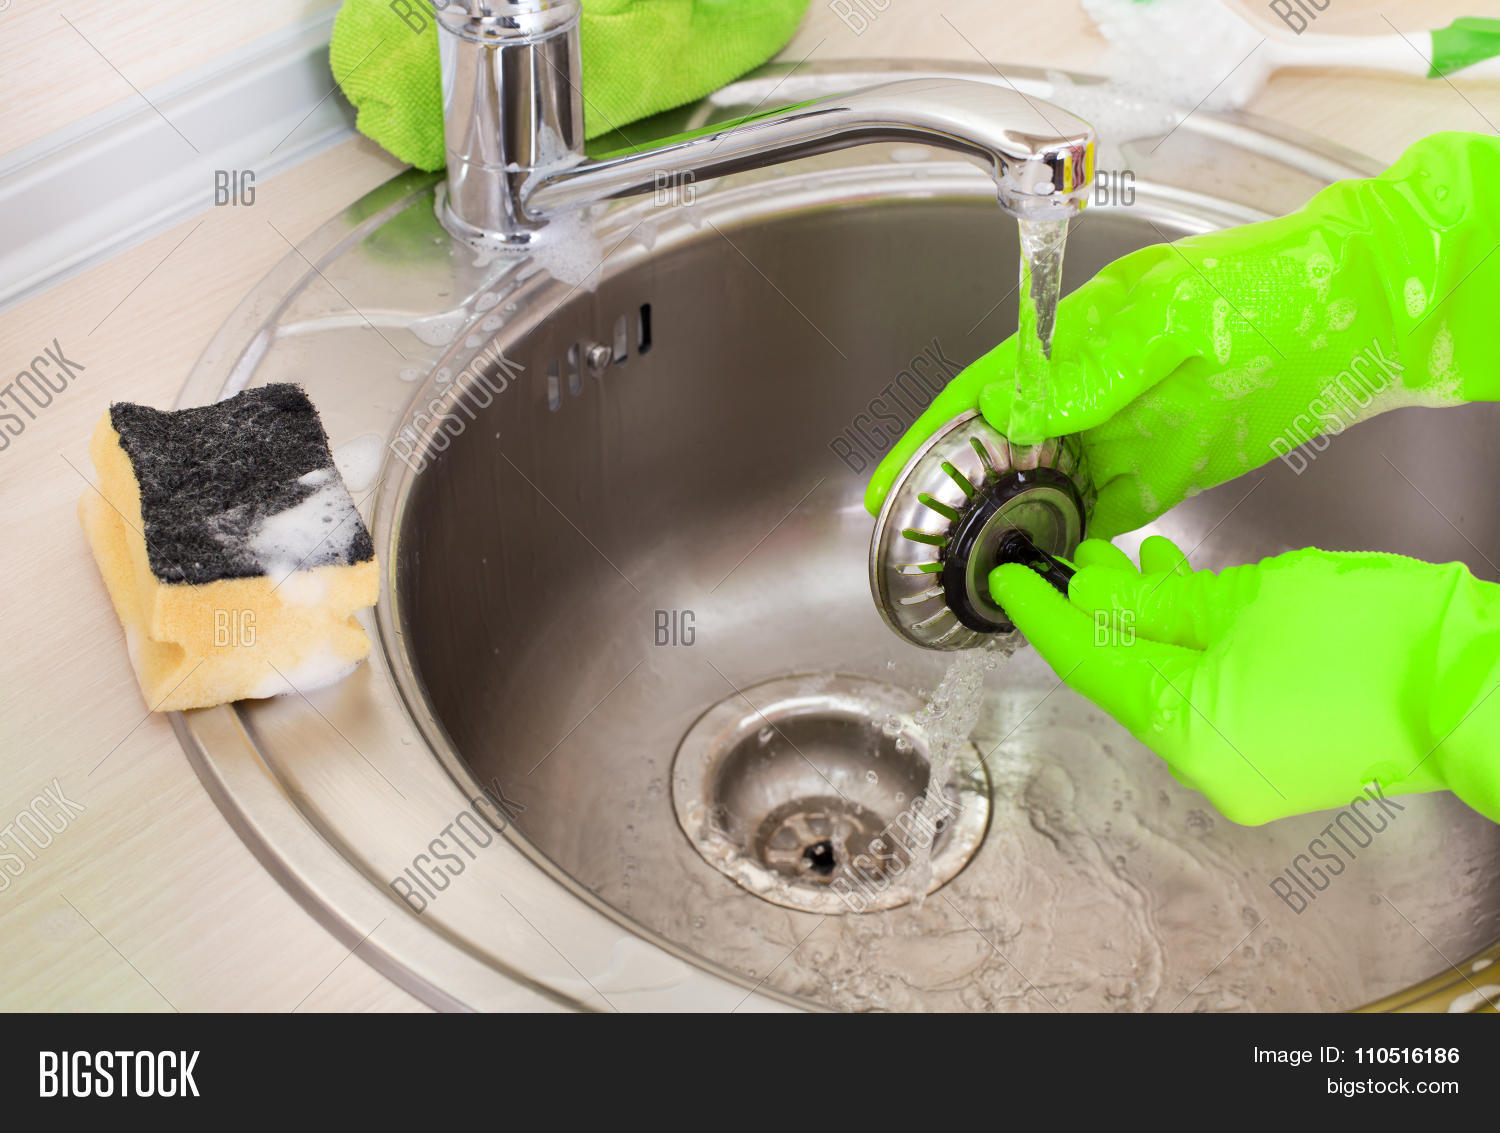 Cleaning Kitchen Sink Drain Cleaning kitchen sink drain image photo bigstock cleaning kitchen sink and drain workwithnaturefo